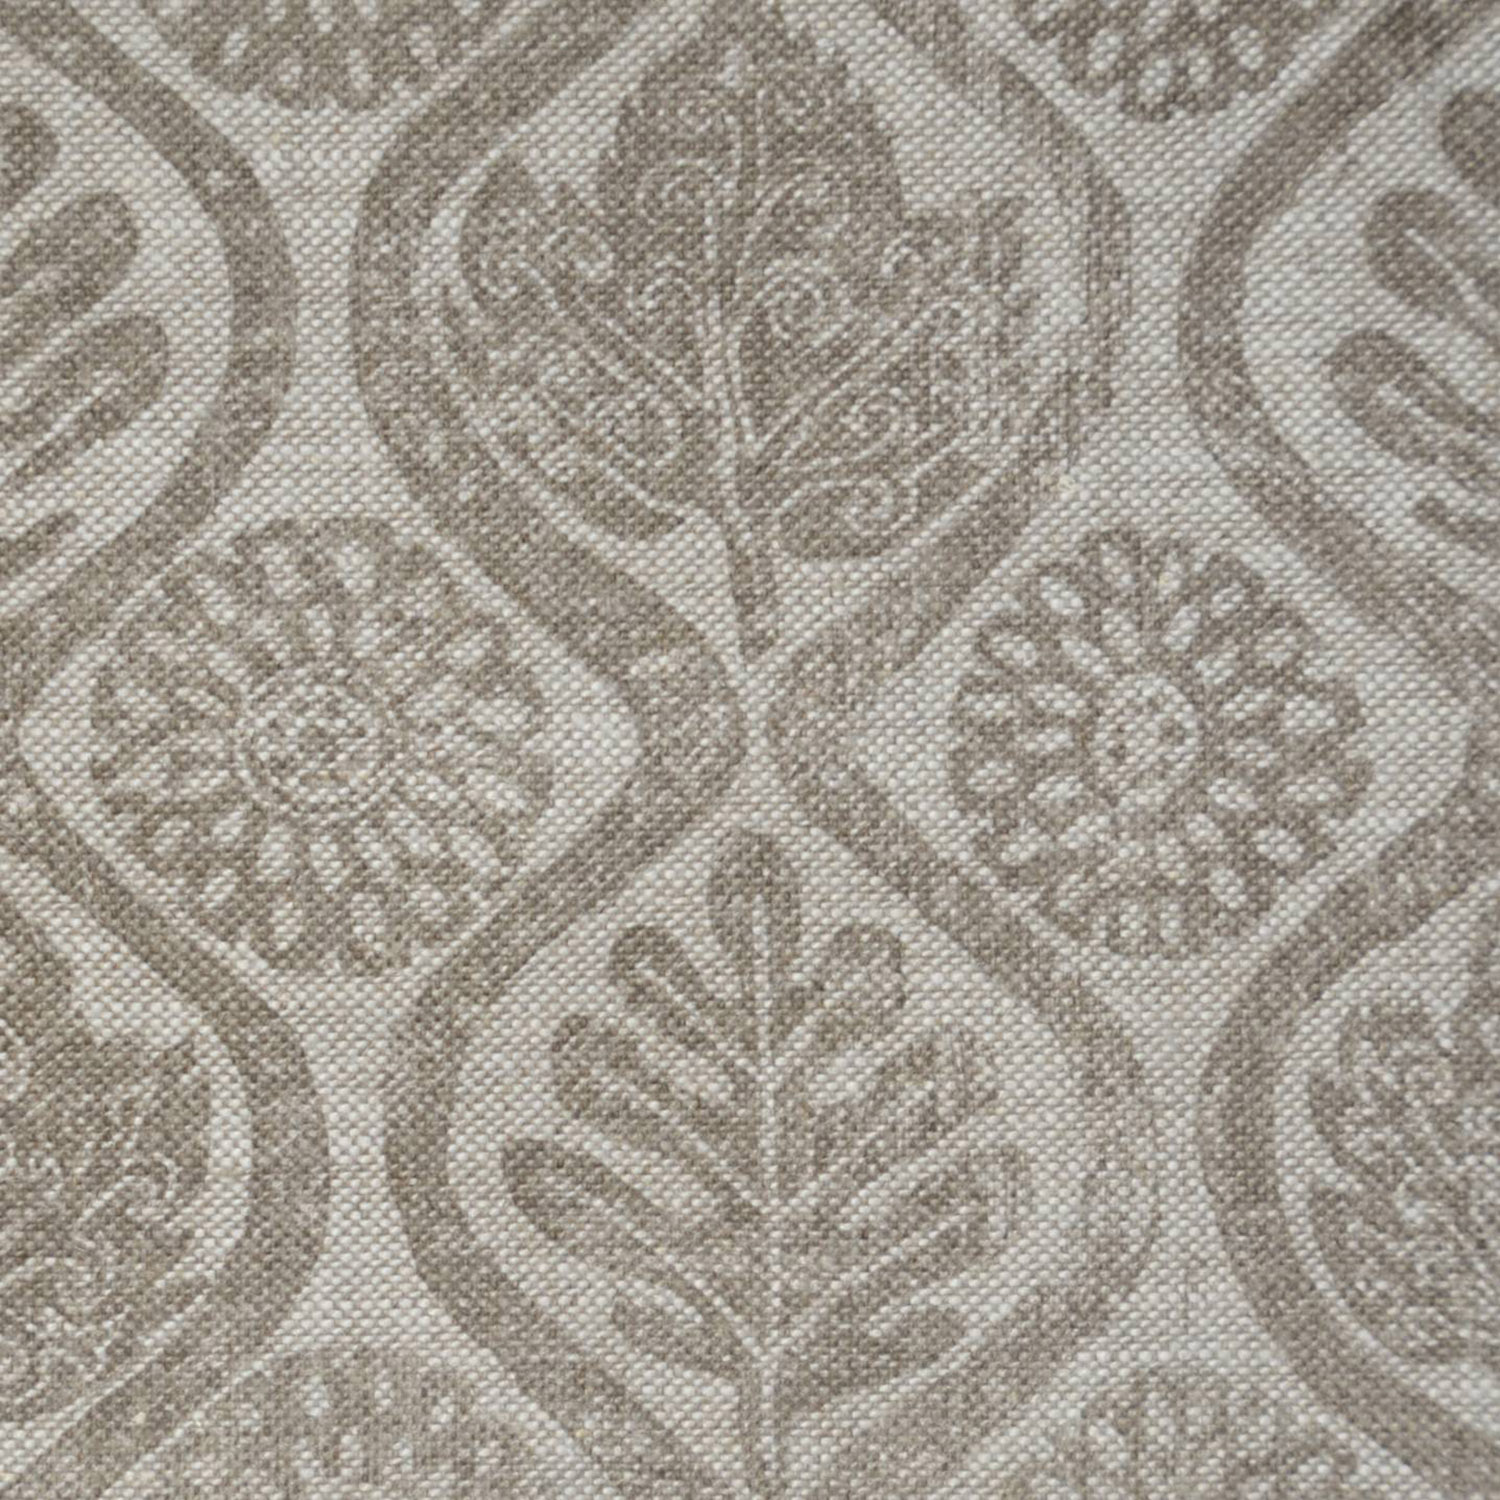 <p><strong>OAKLEAVES</strong>taupe/oatmeal 6300-03<a href=/the-peggy-angus-collection/oakleaves-taupe-oatmeal-6300-03>More →</a></p>